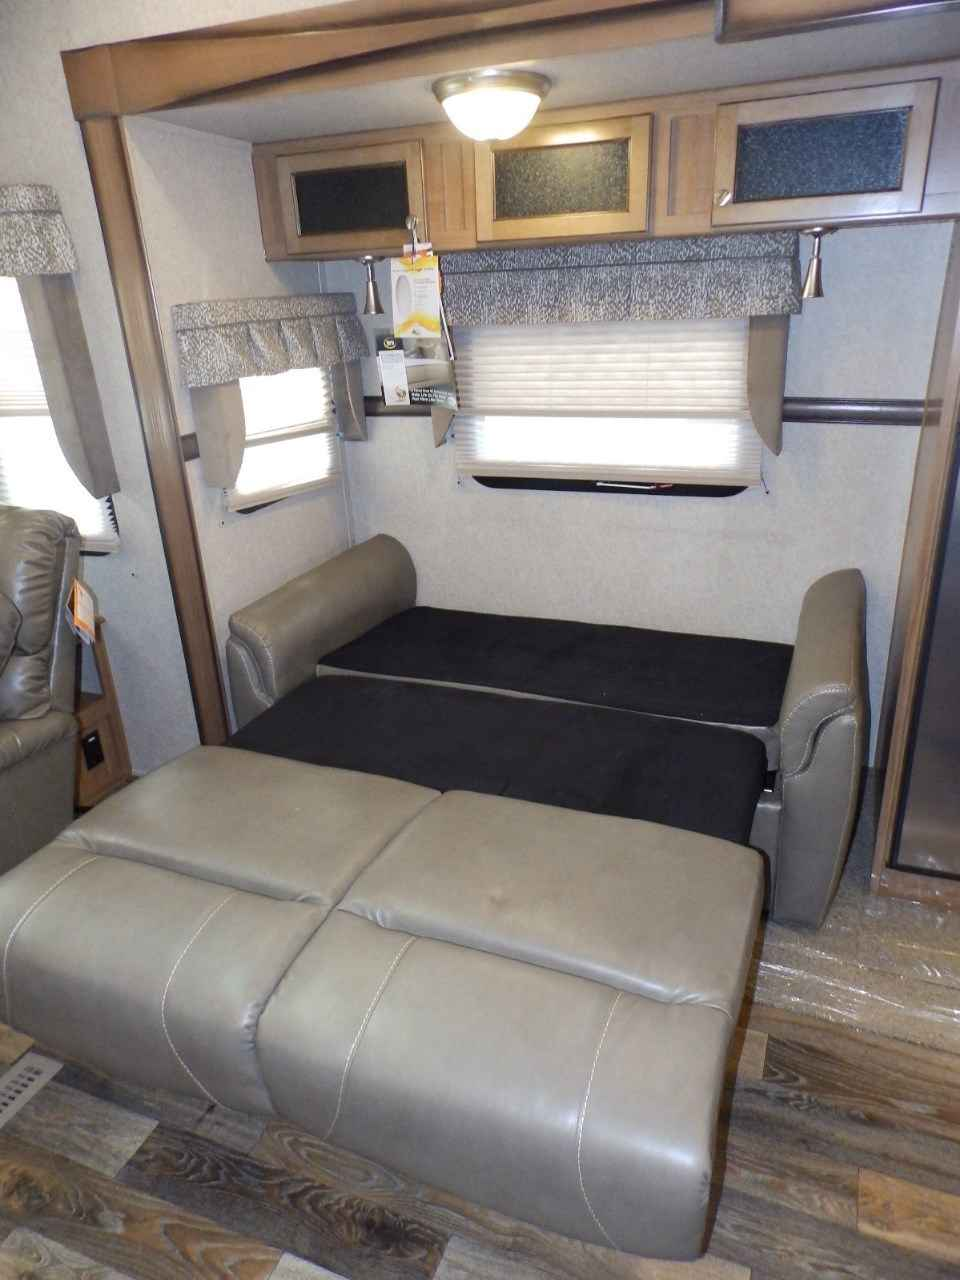 2017 New Forest River ROCKWOOD 8299BS 3 SLIDES REAR RECLINER CHAIRS Travel Trailer in California CA & 2017 New Forest River ROCKWOOD 8299BS 3 SLIDES REAR RECLINER ... islam-shia.org